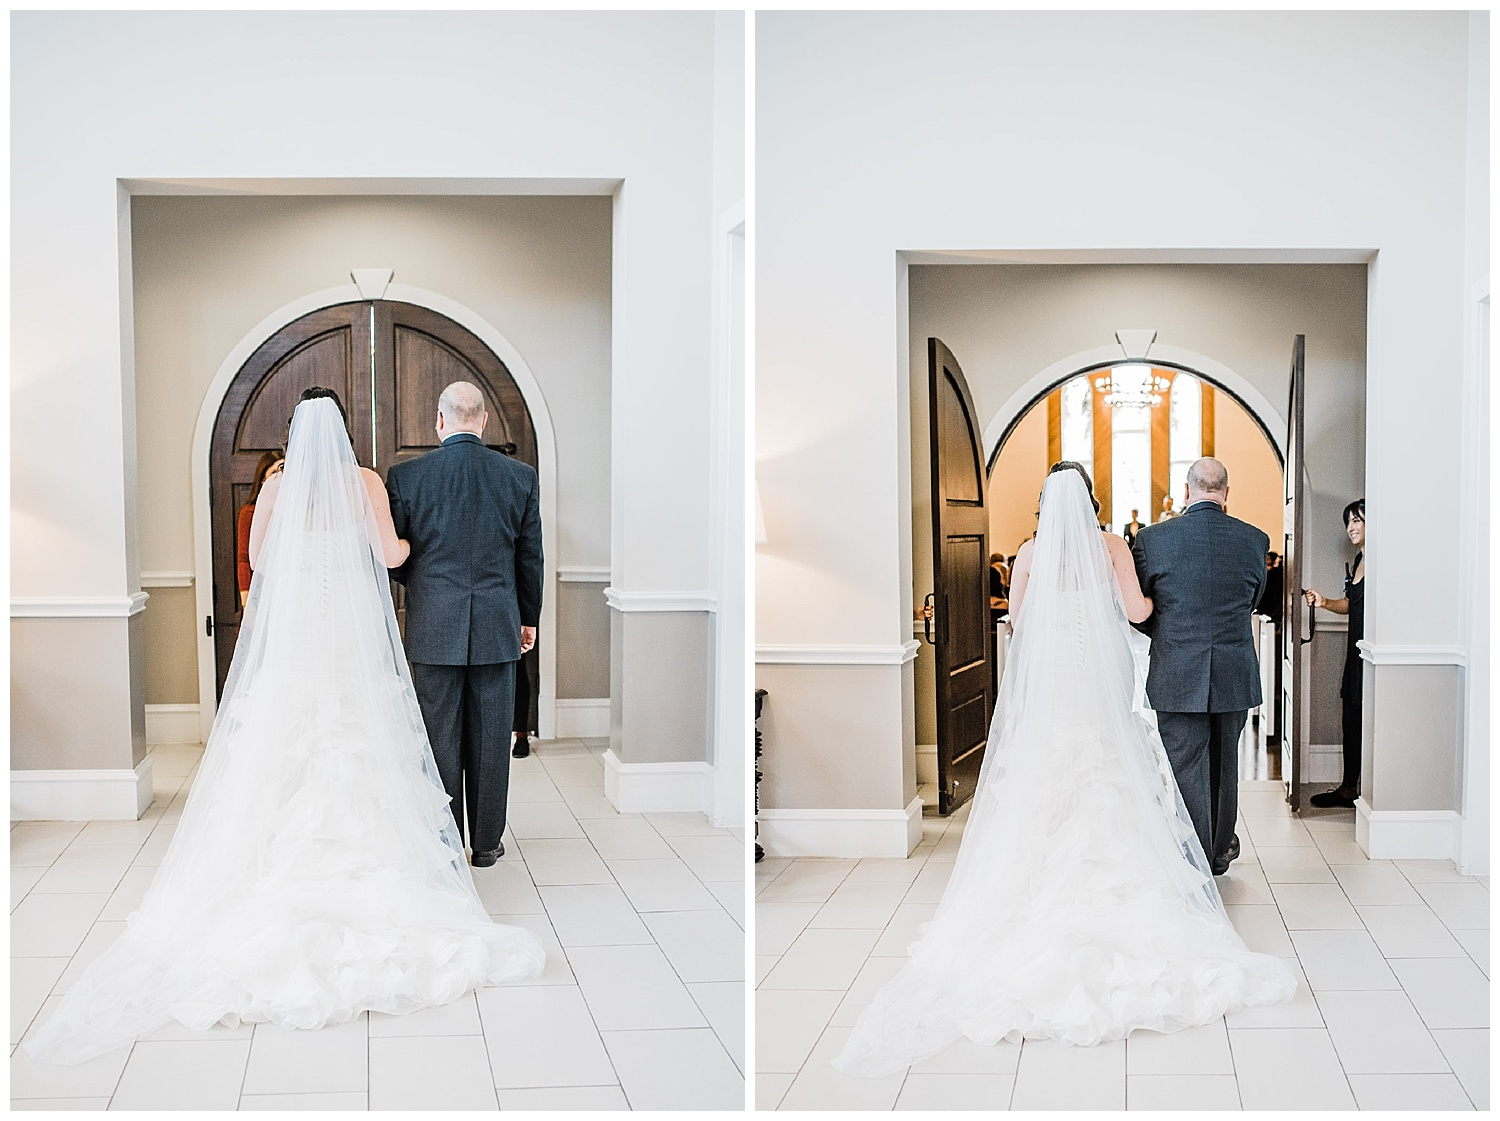 Father of the bride walking her down the isle